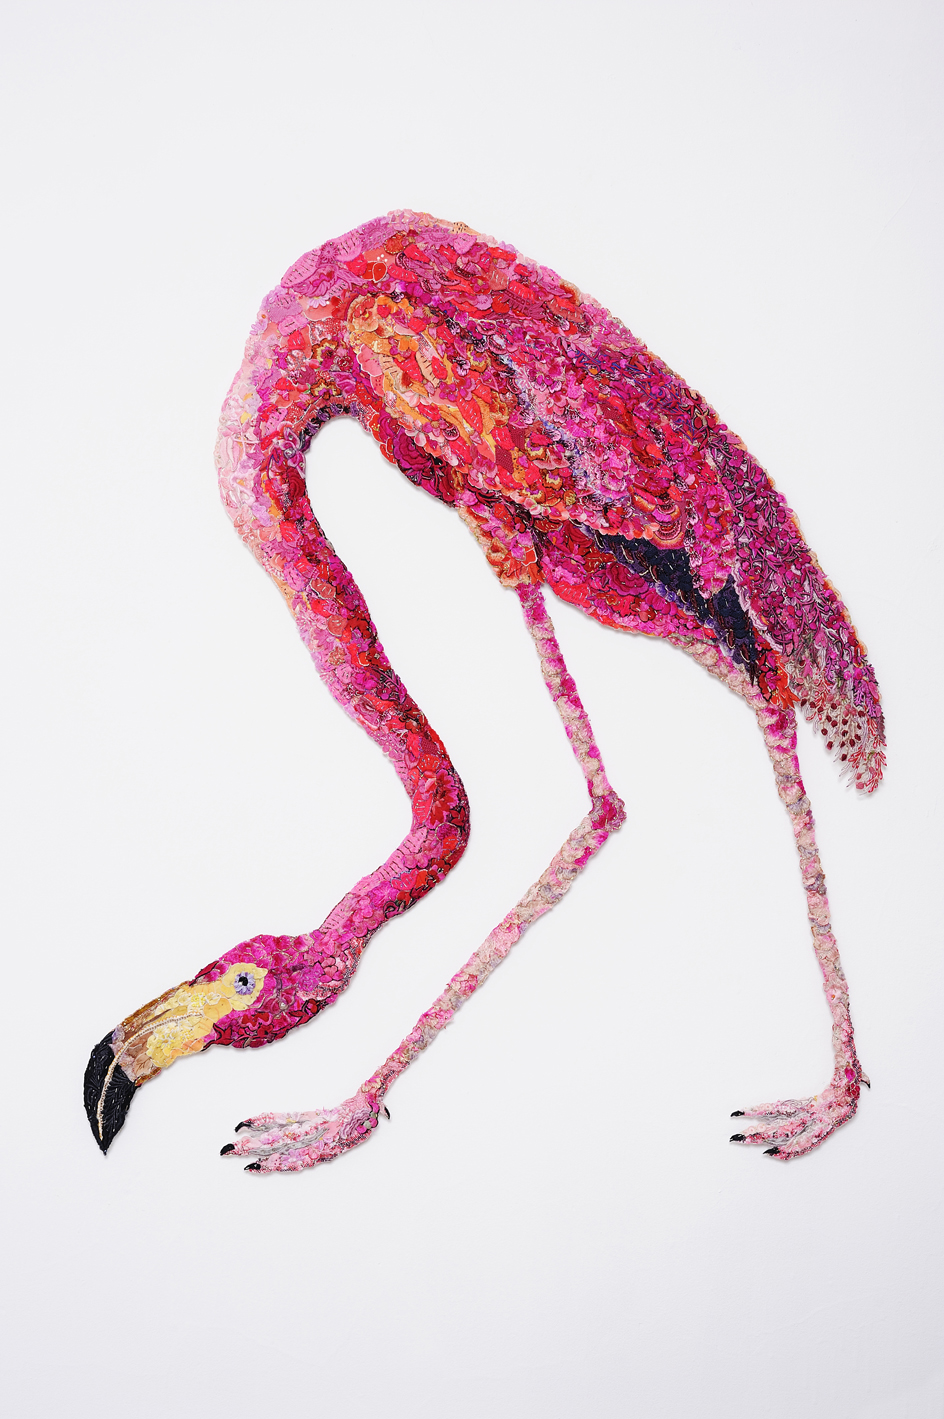 Flaming Flamingo 2011 after John James Audubon 1838